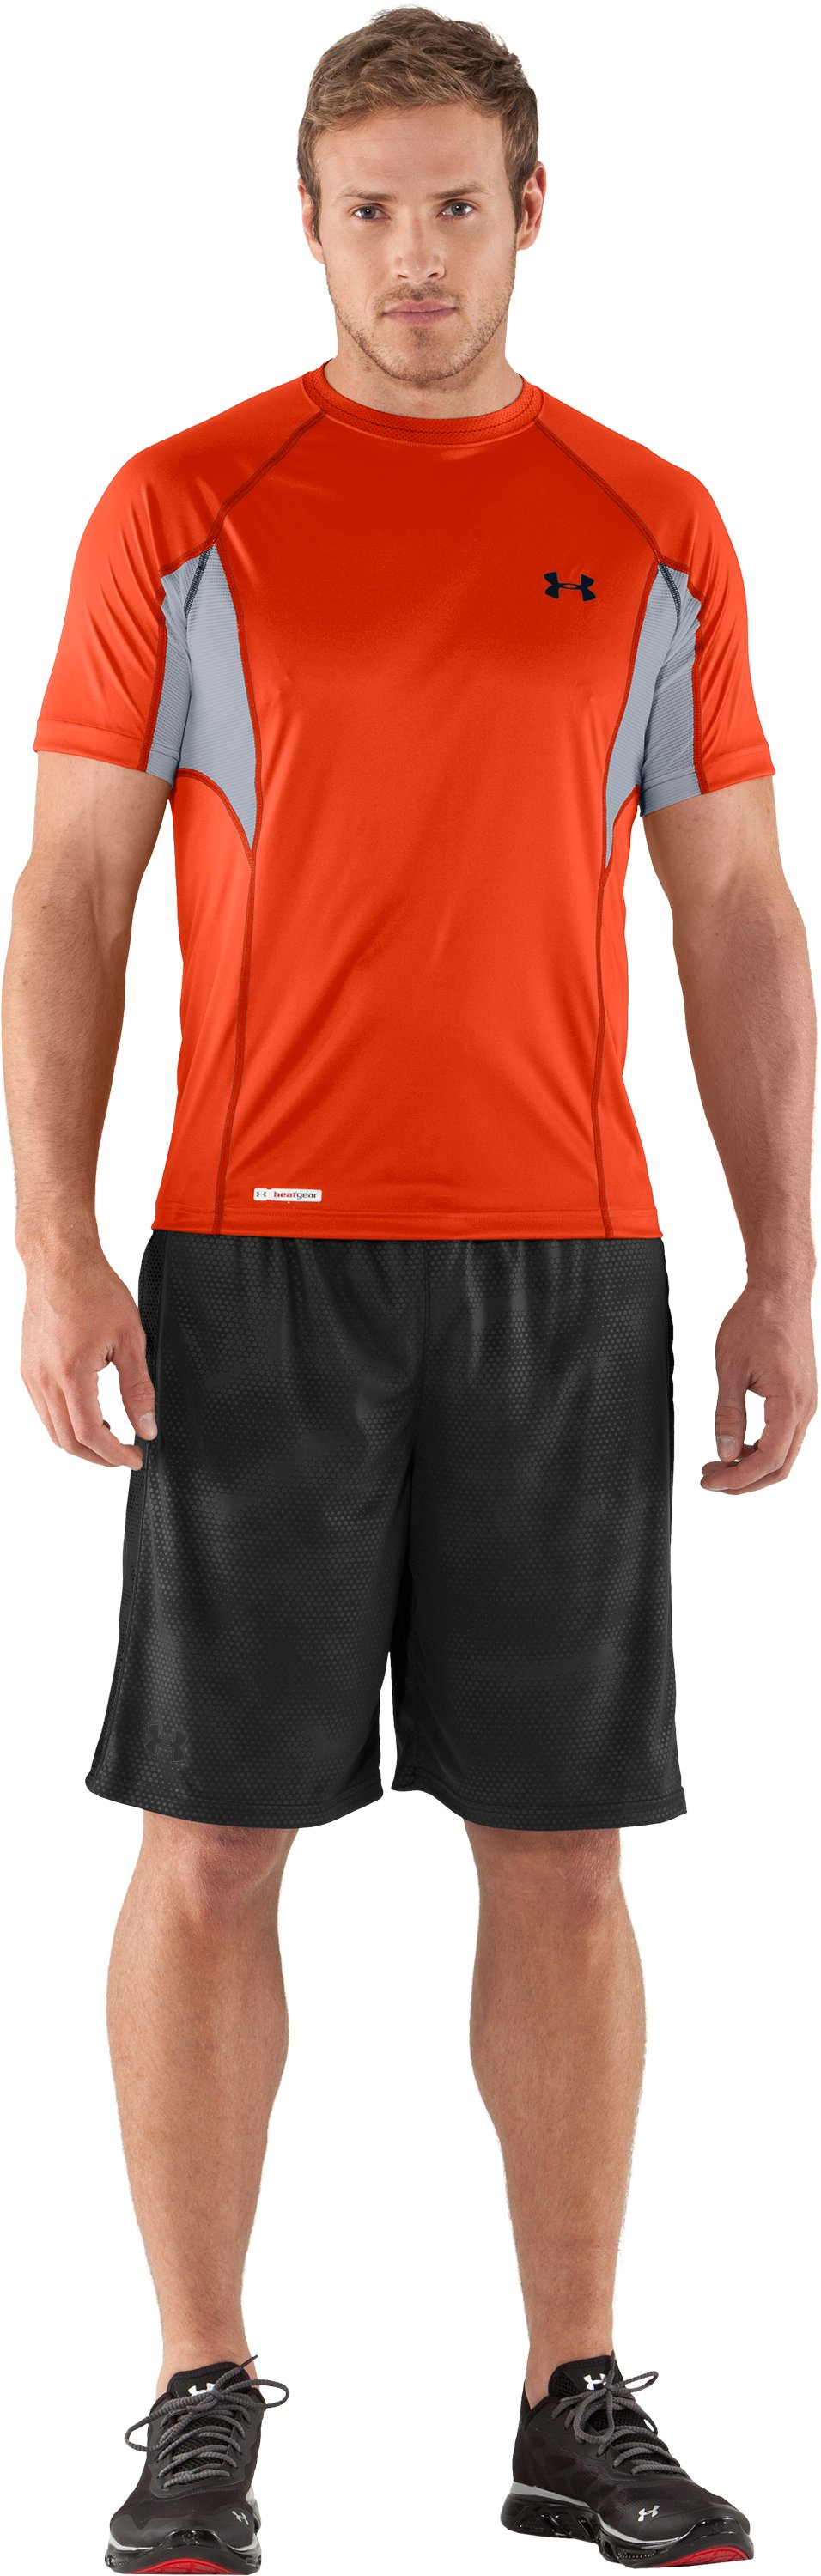 Men's HeatGear® Flyweight Printed Fitted Short Sleeve, Explosive